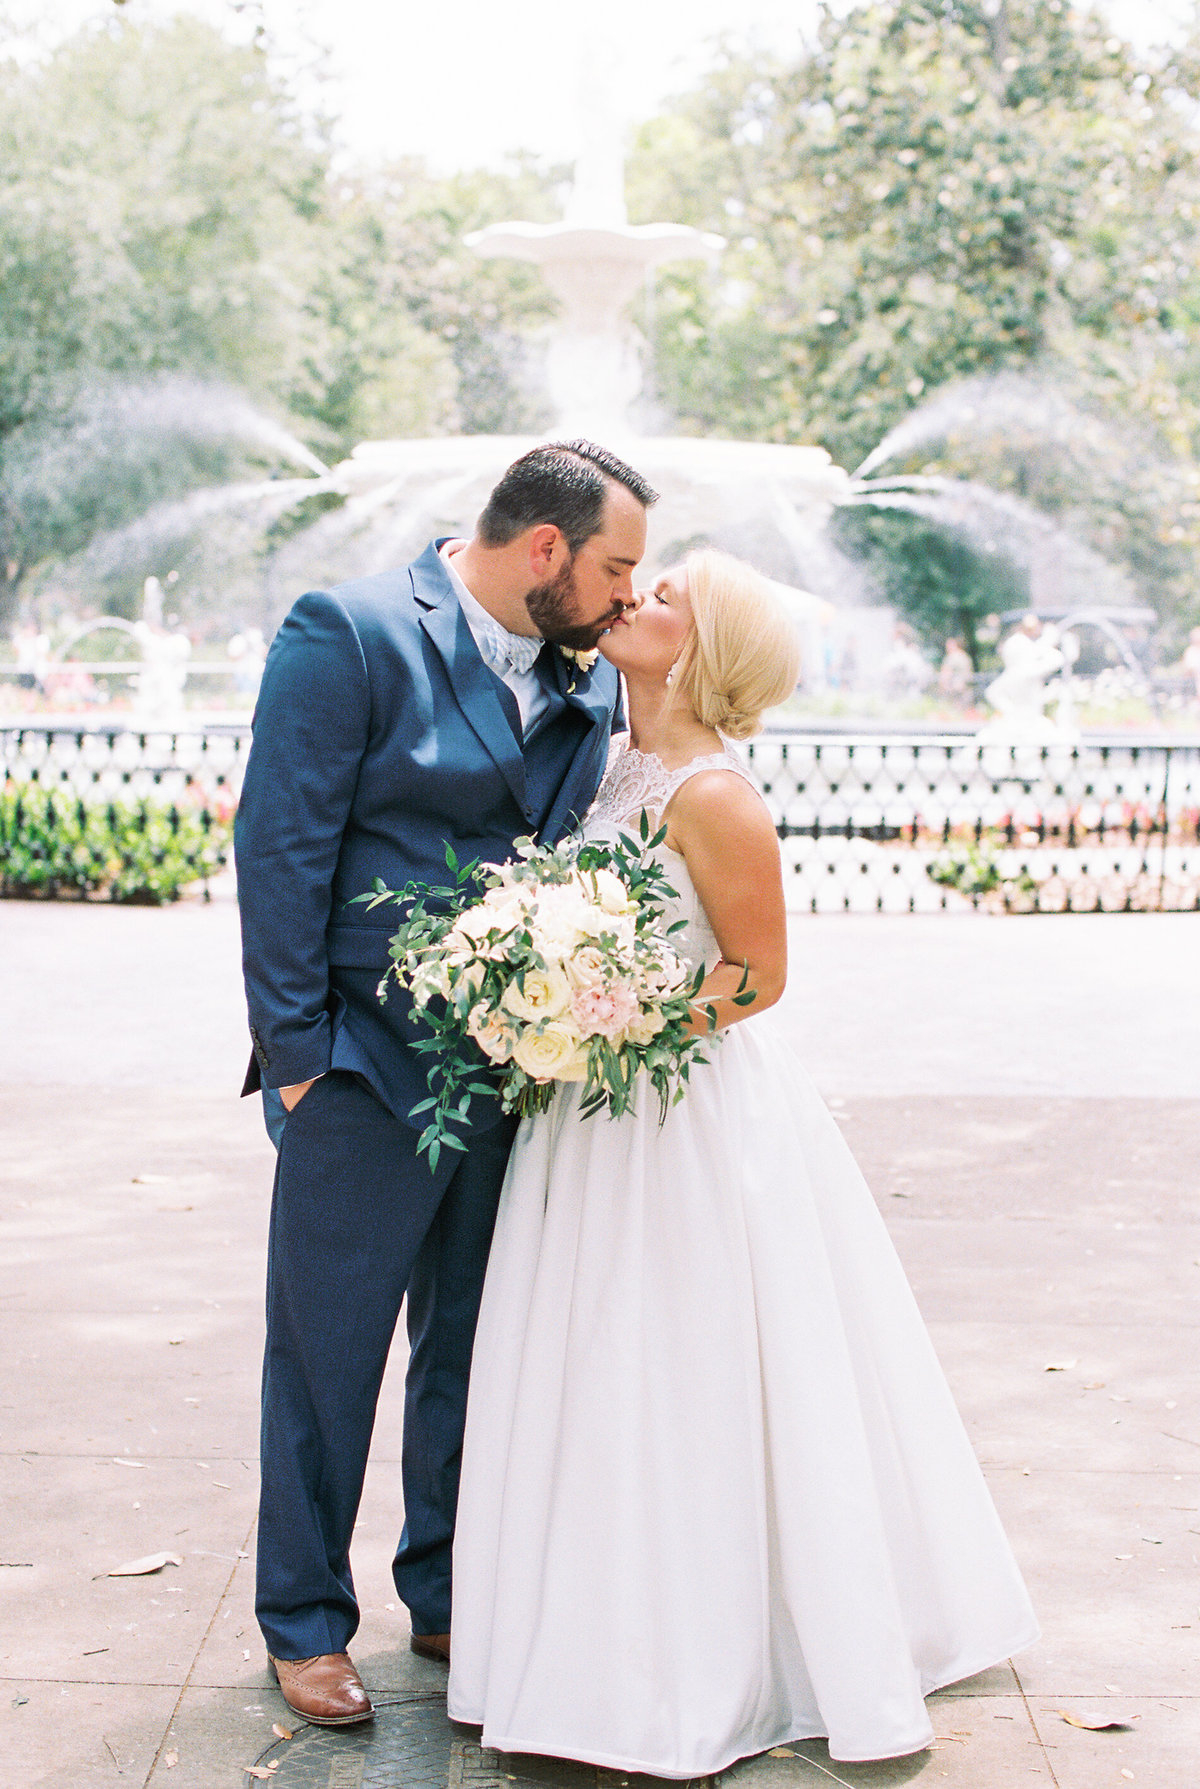 Savannah-Georgia-Wedding-Photographer-Holly-Felts-Photography-19